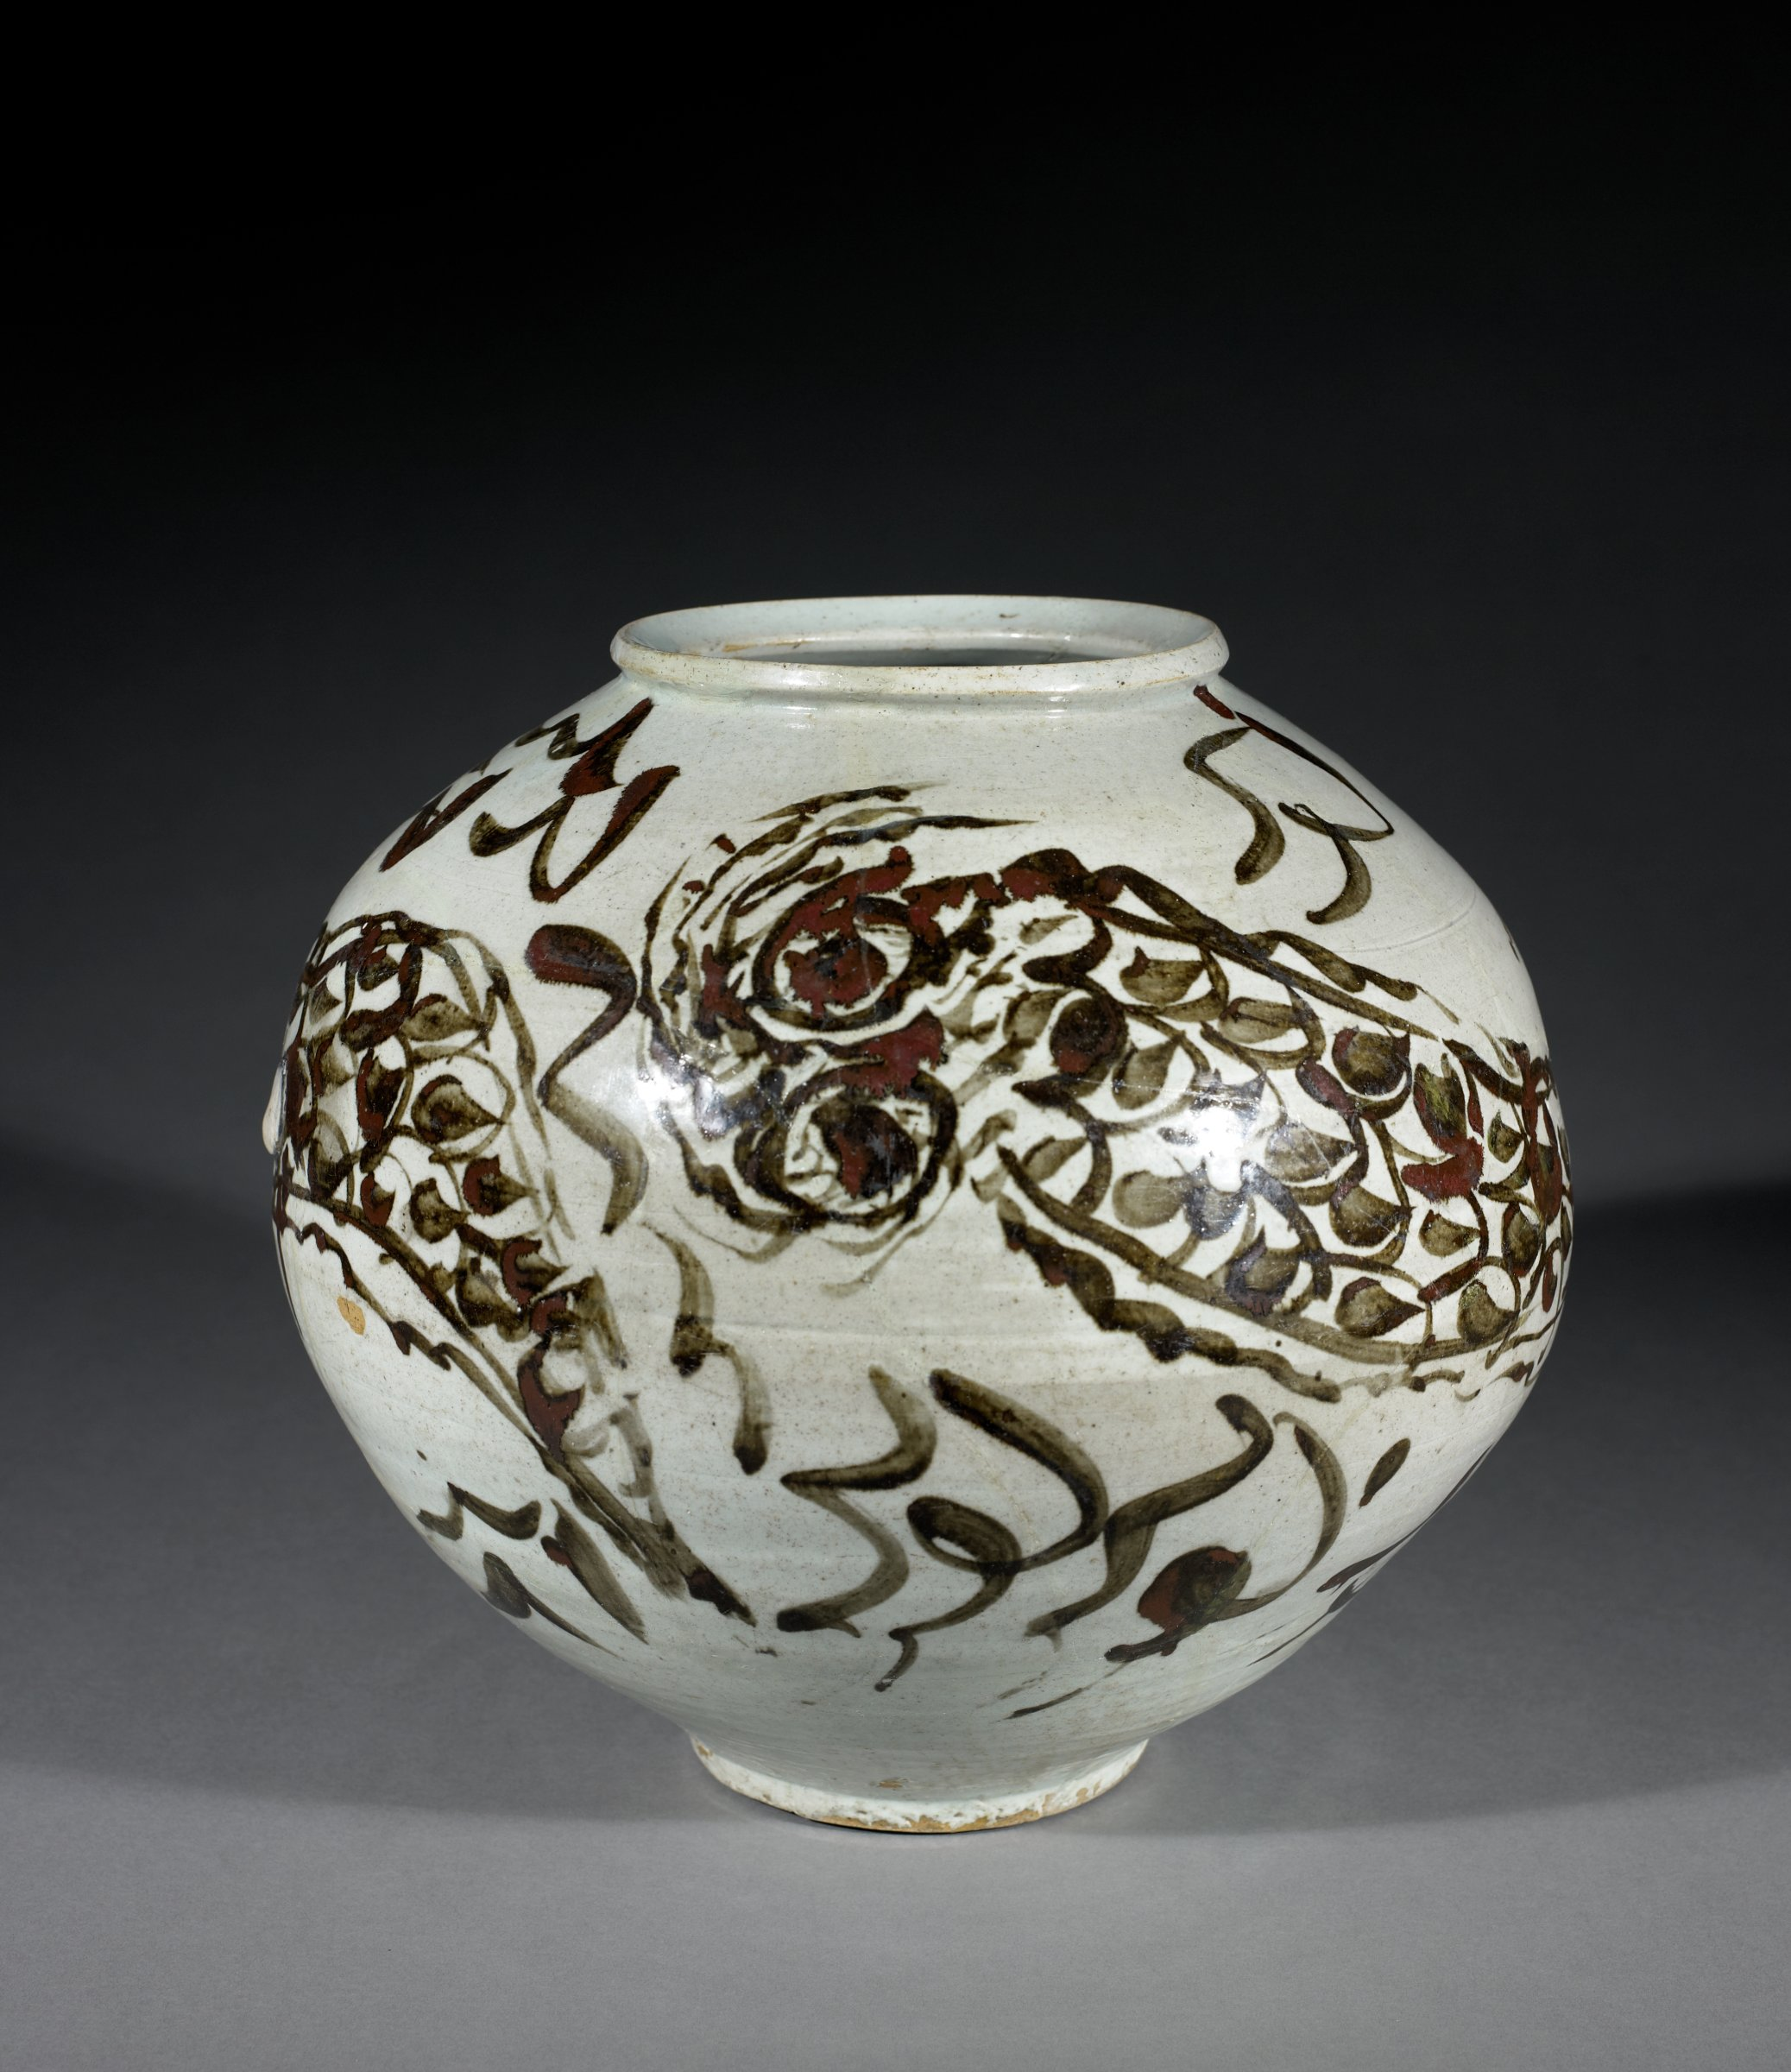 This jar was made in two halves, as evidenced from the groove in the center where the two pieces were joined. The jar was then decorated with a freely drawn dragon then fired. The numerous imperfections in the clay body are typical of 17th century pieces and in the Korean mind give character to each jar. Likewise, the brown painting displays subtle gradations and variations in texture that enliven the picture of the dragon.